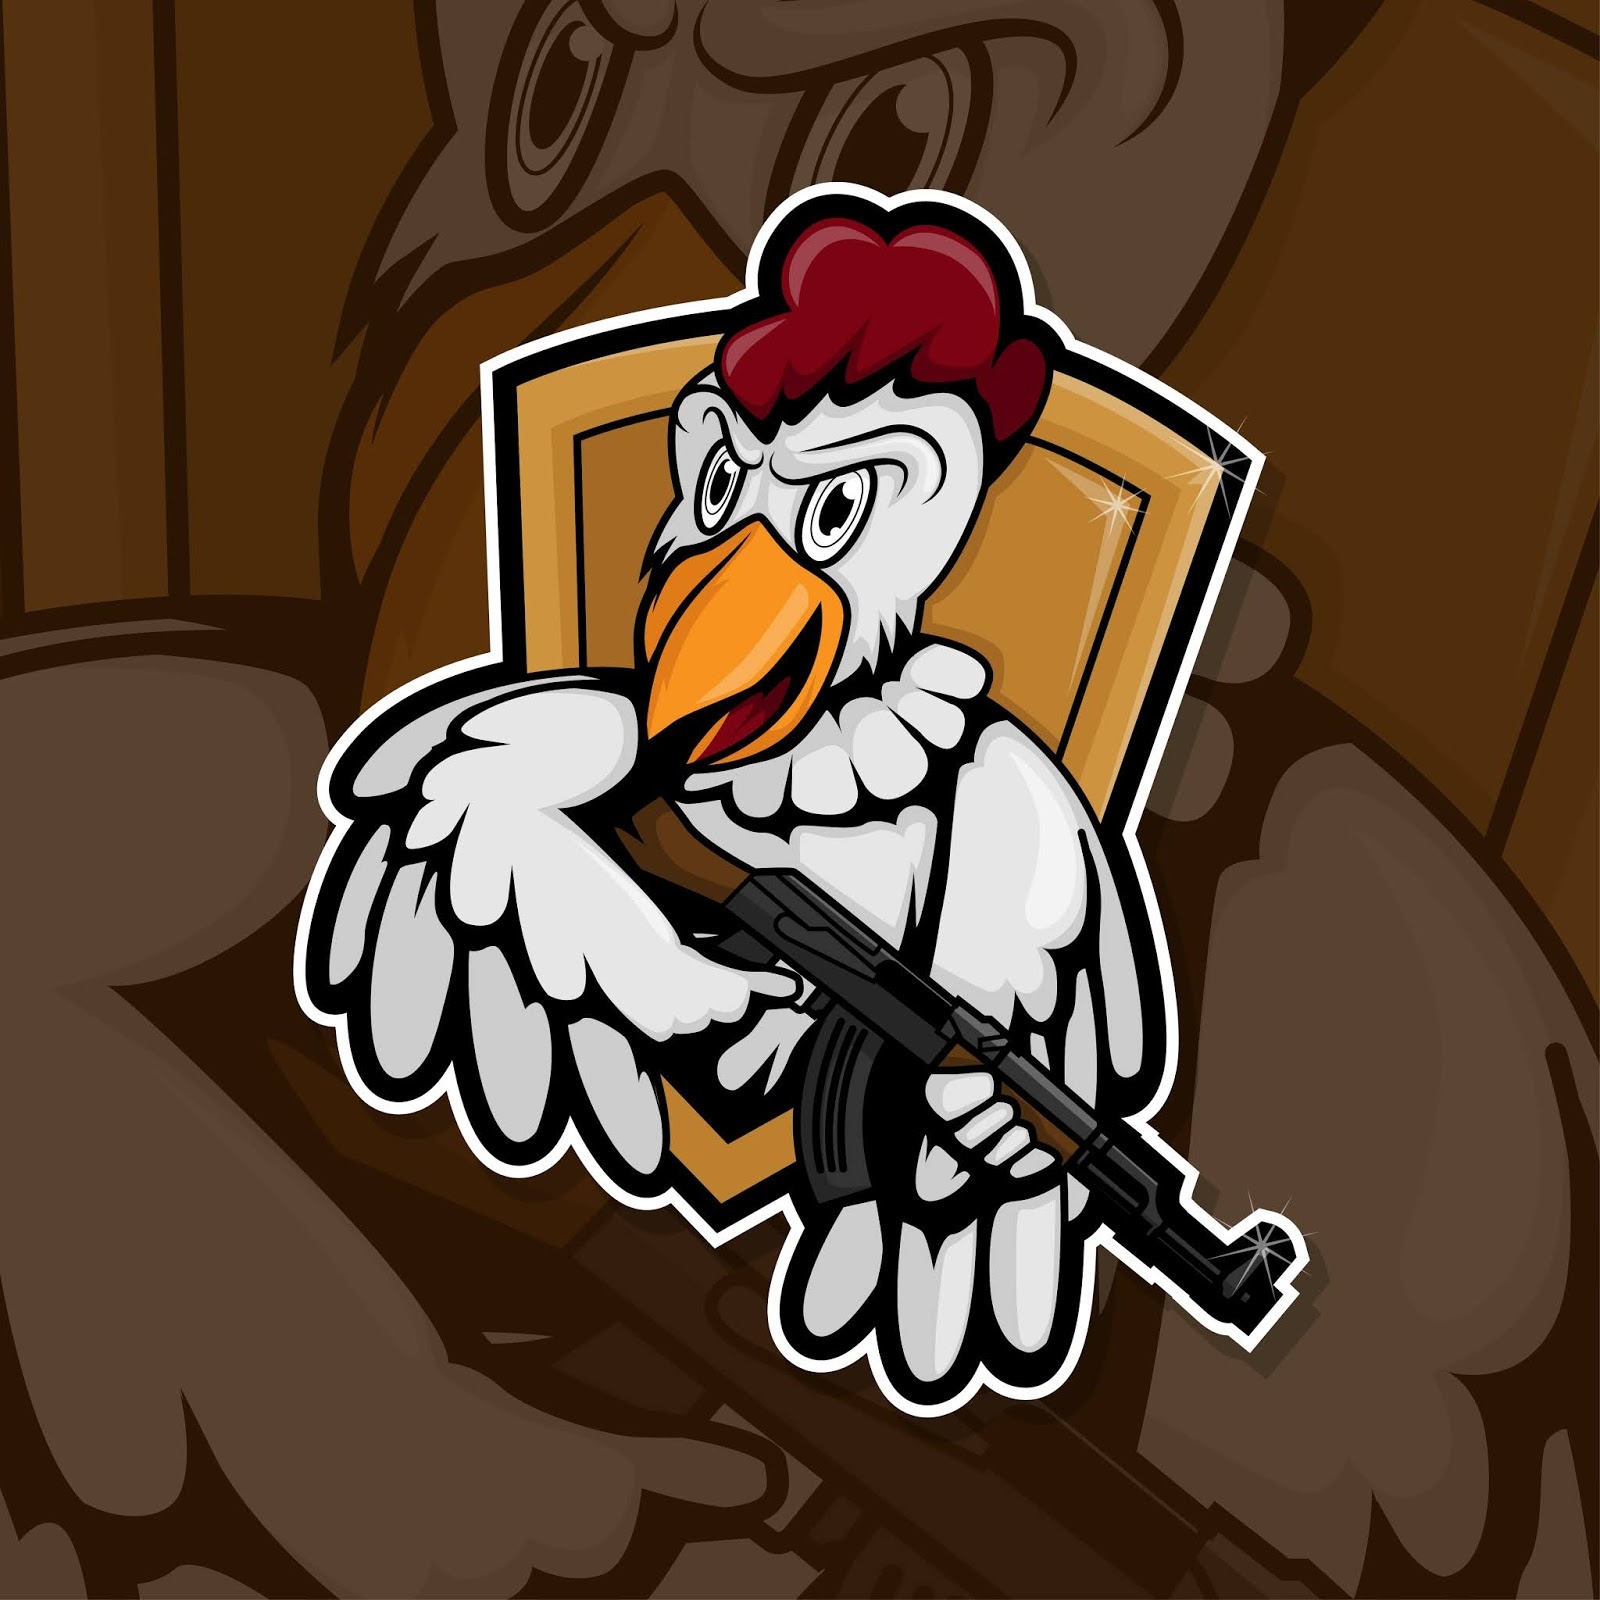 Esport Gamer Logo Chicken Army Free Download Vector CDR, AI, EPS and PNG Formats